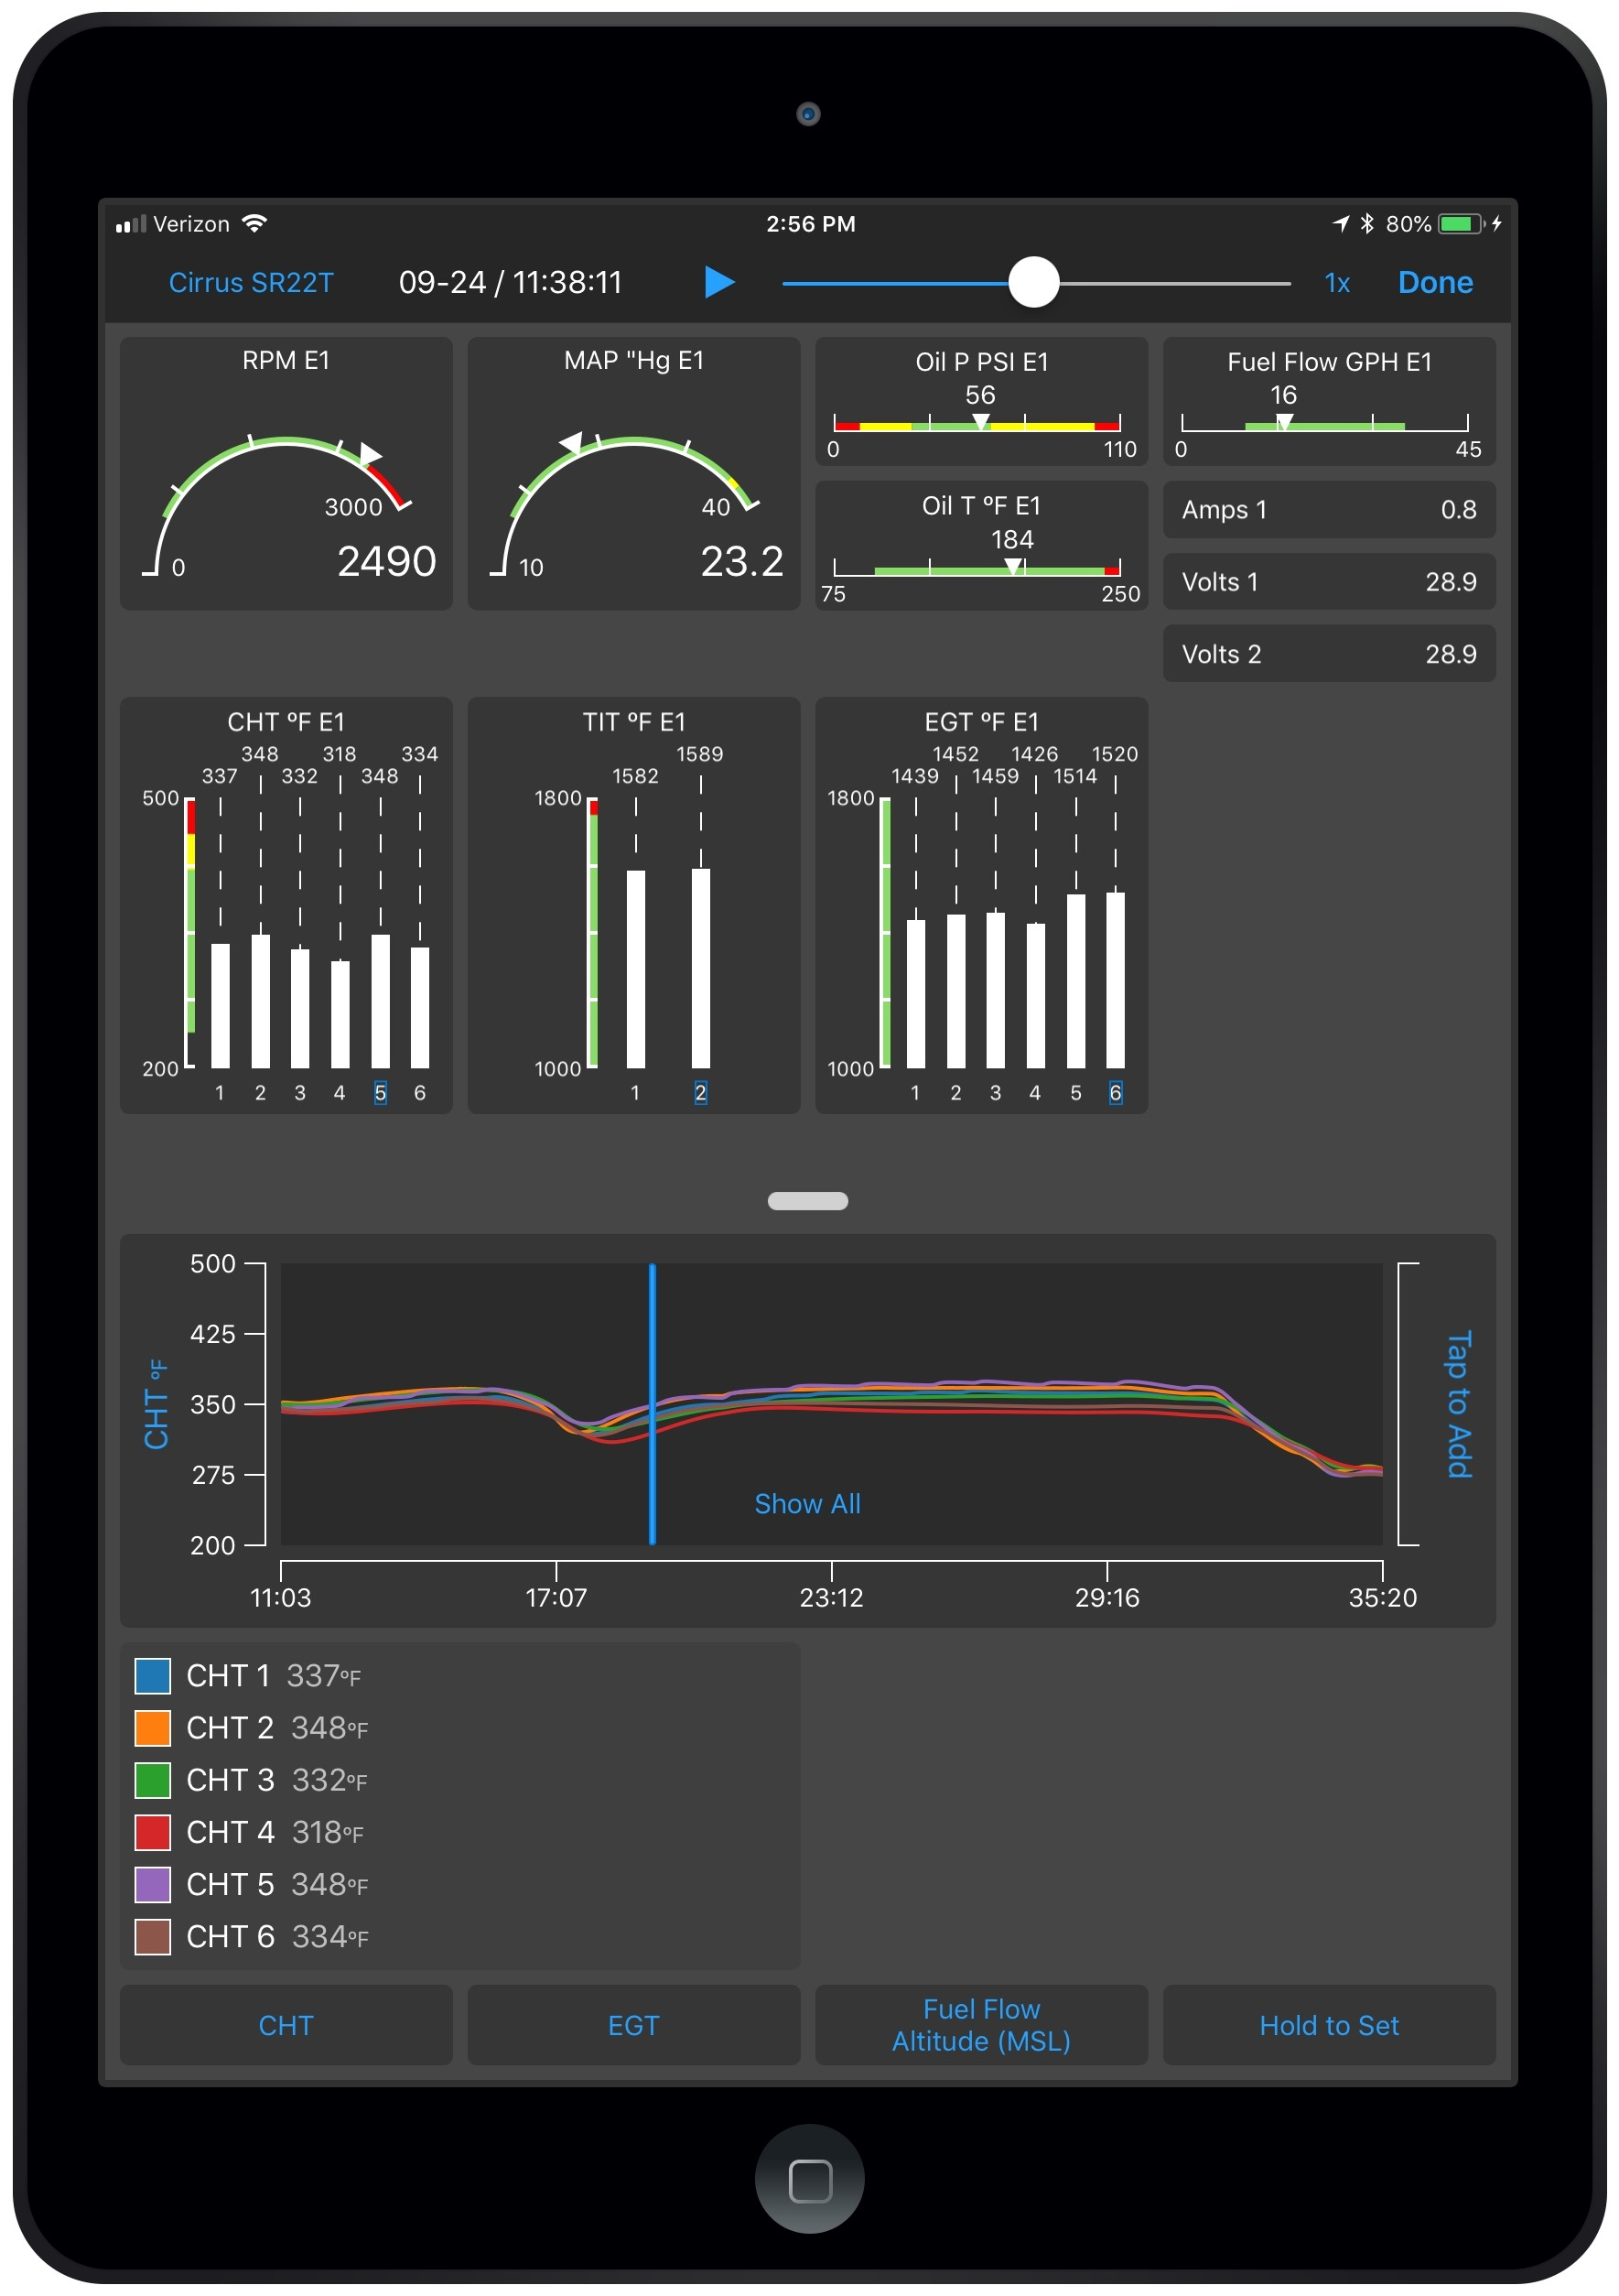 Garmin Pilot app launches real-time engine data display with play